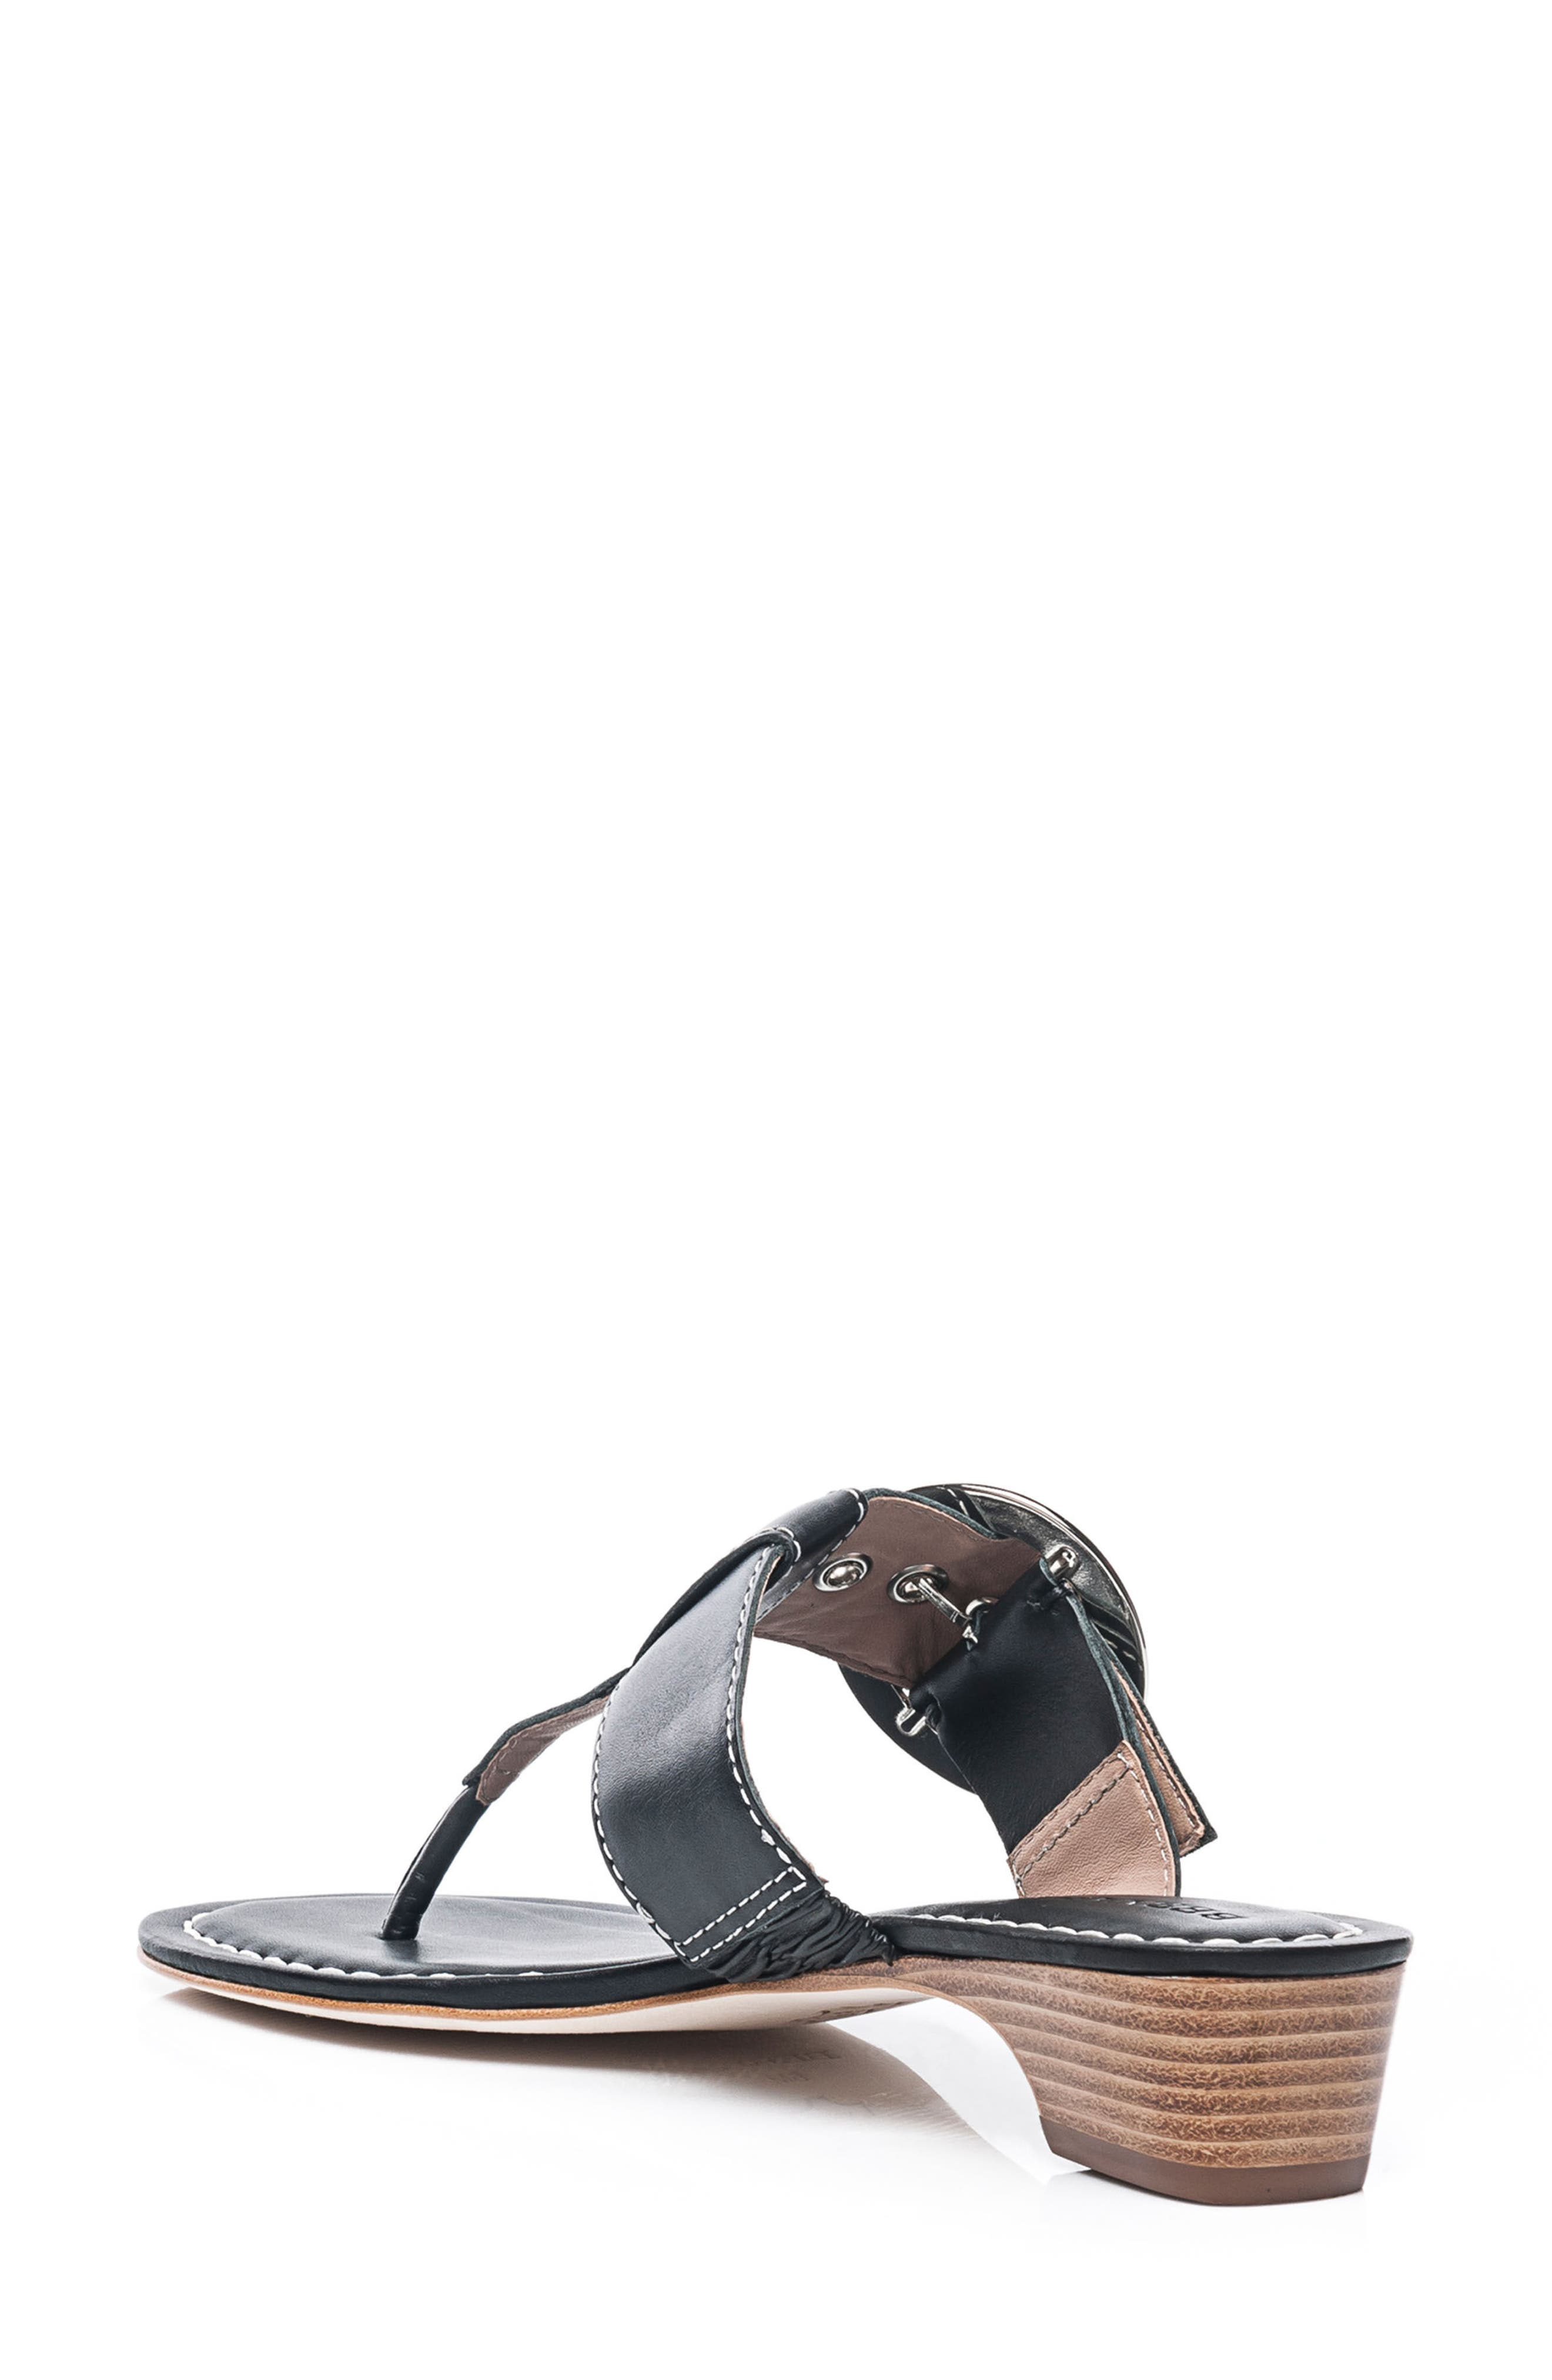 Bernardo Grace Sandal,                             Alternate thumbnail 2, color,                             001